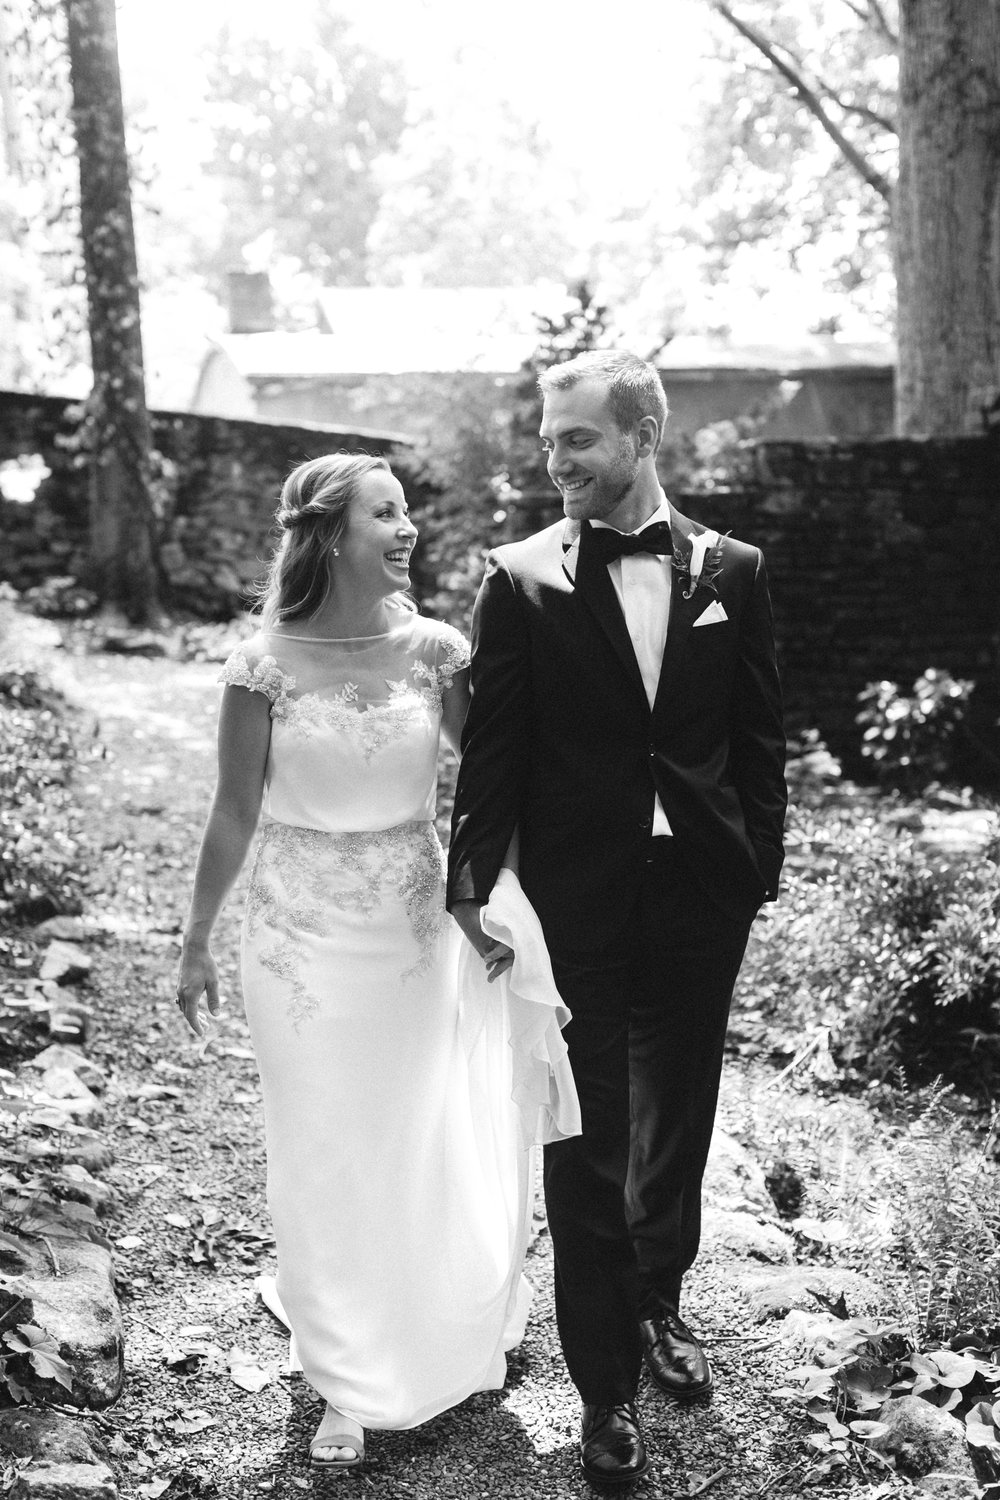 Katie_Matt_Wedding_Knoxville_Botanical_Garden_Abigail_Malone_photography-85.jpg